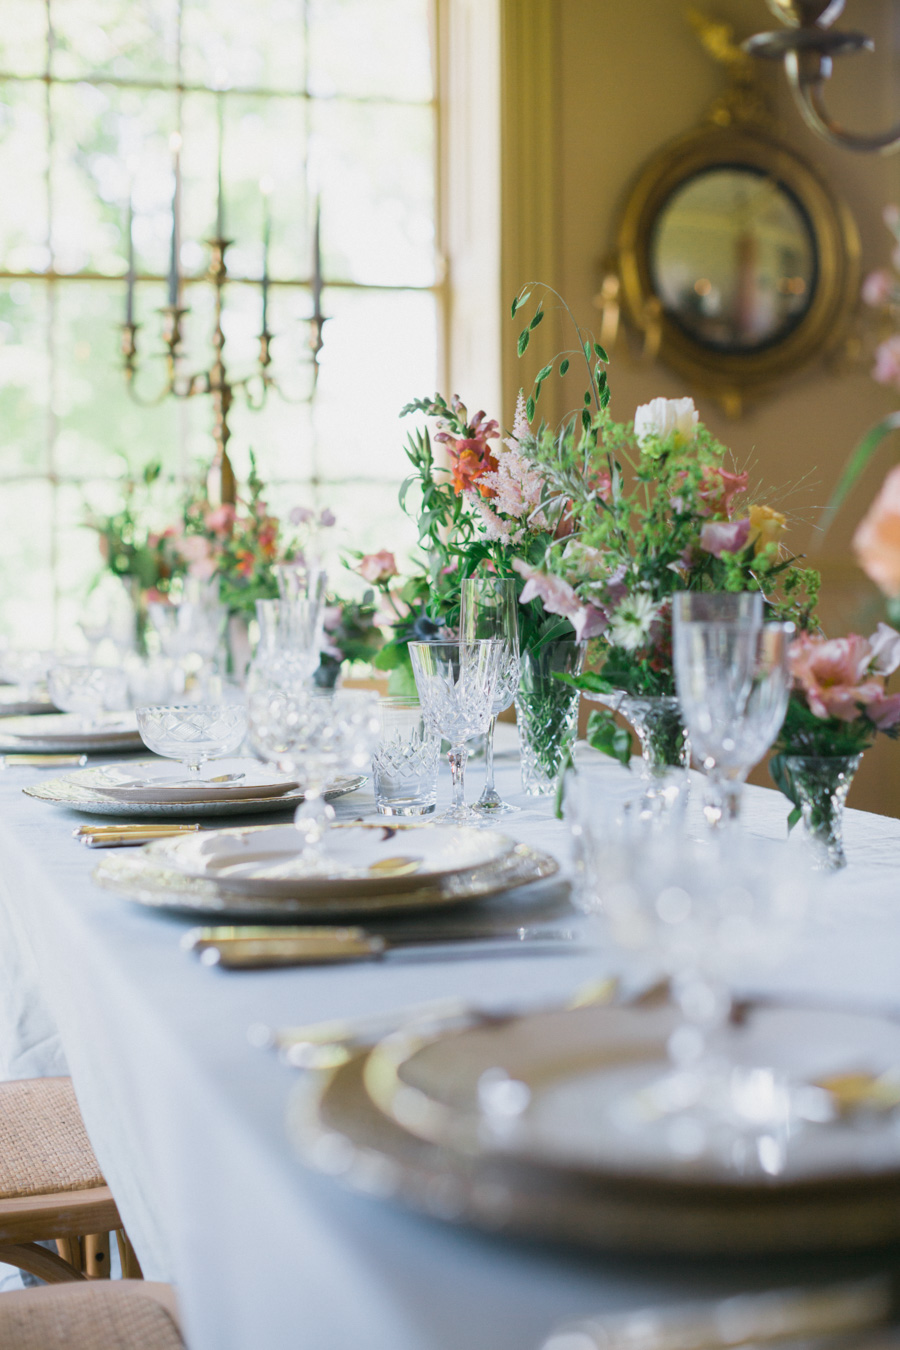 Divine wedding styling with English country garden florals at Pauntley Court, photo credit Red Maple Photography (20)